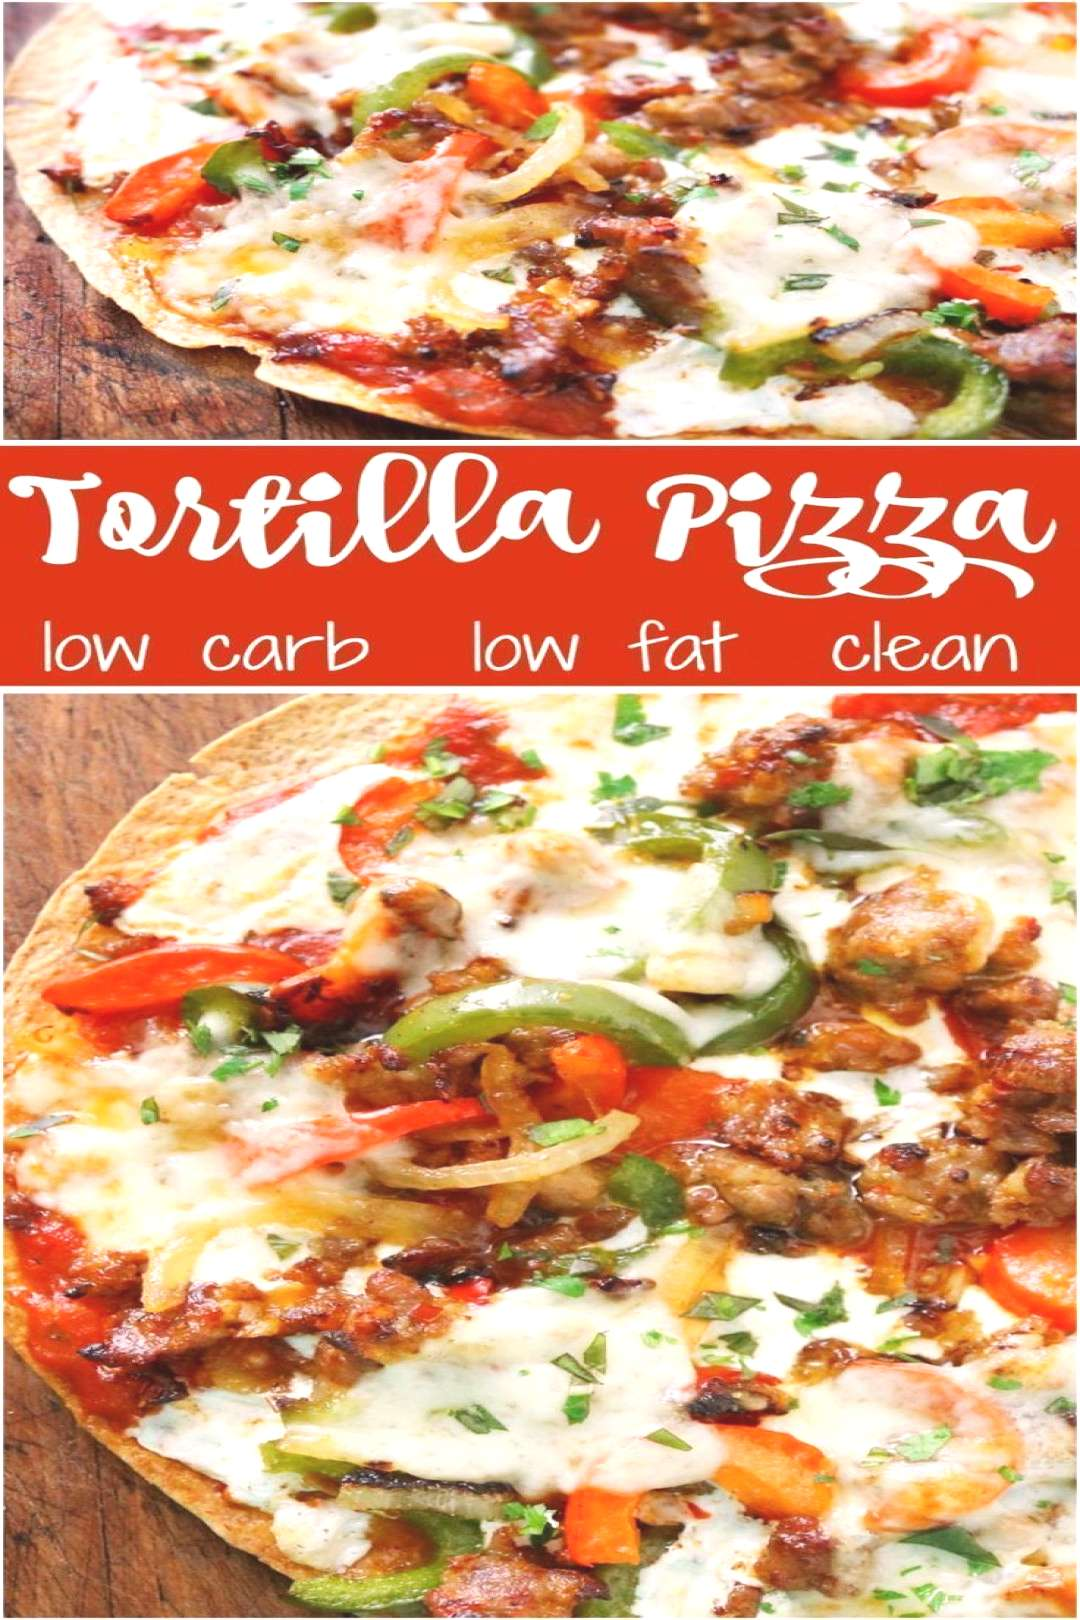 Tortilla Pizza With Sausage Peppers amp Onions- Eat Clean! - -